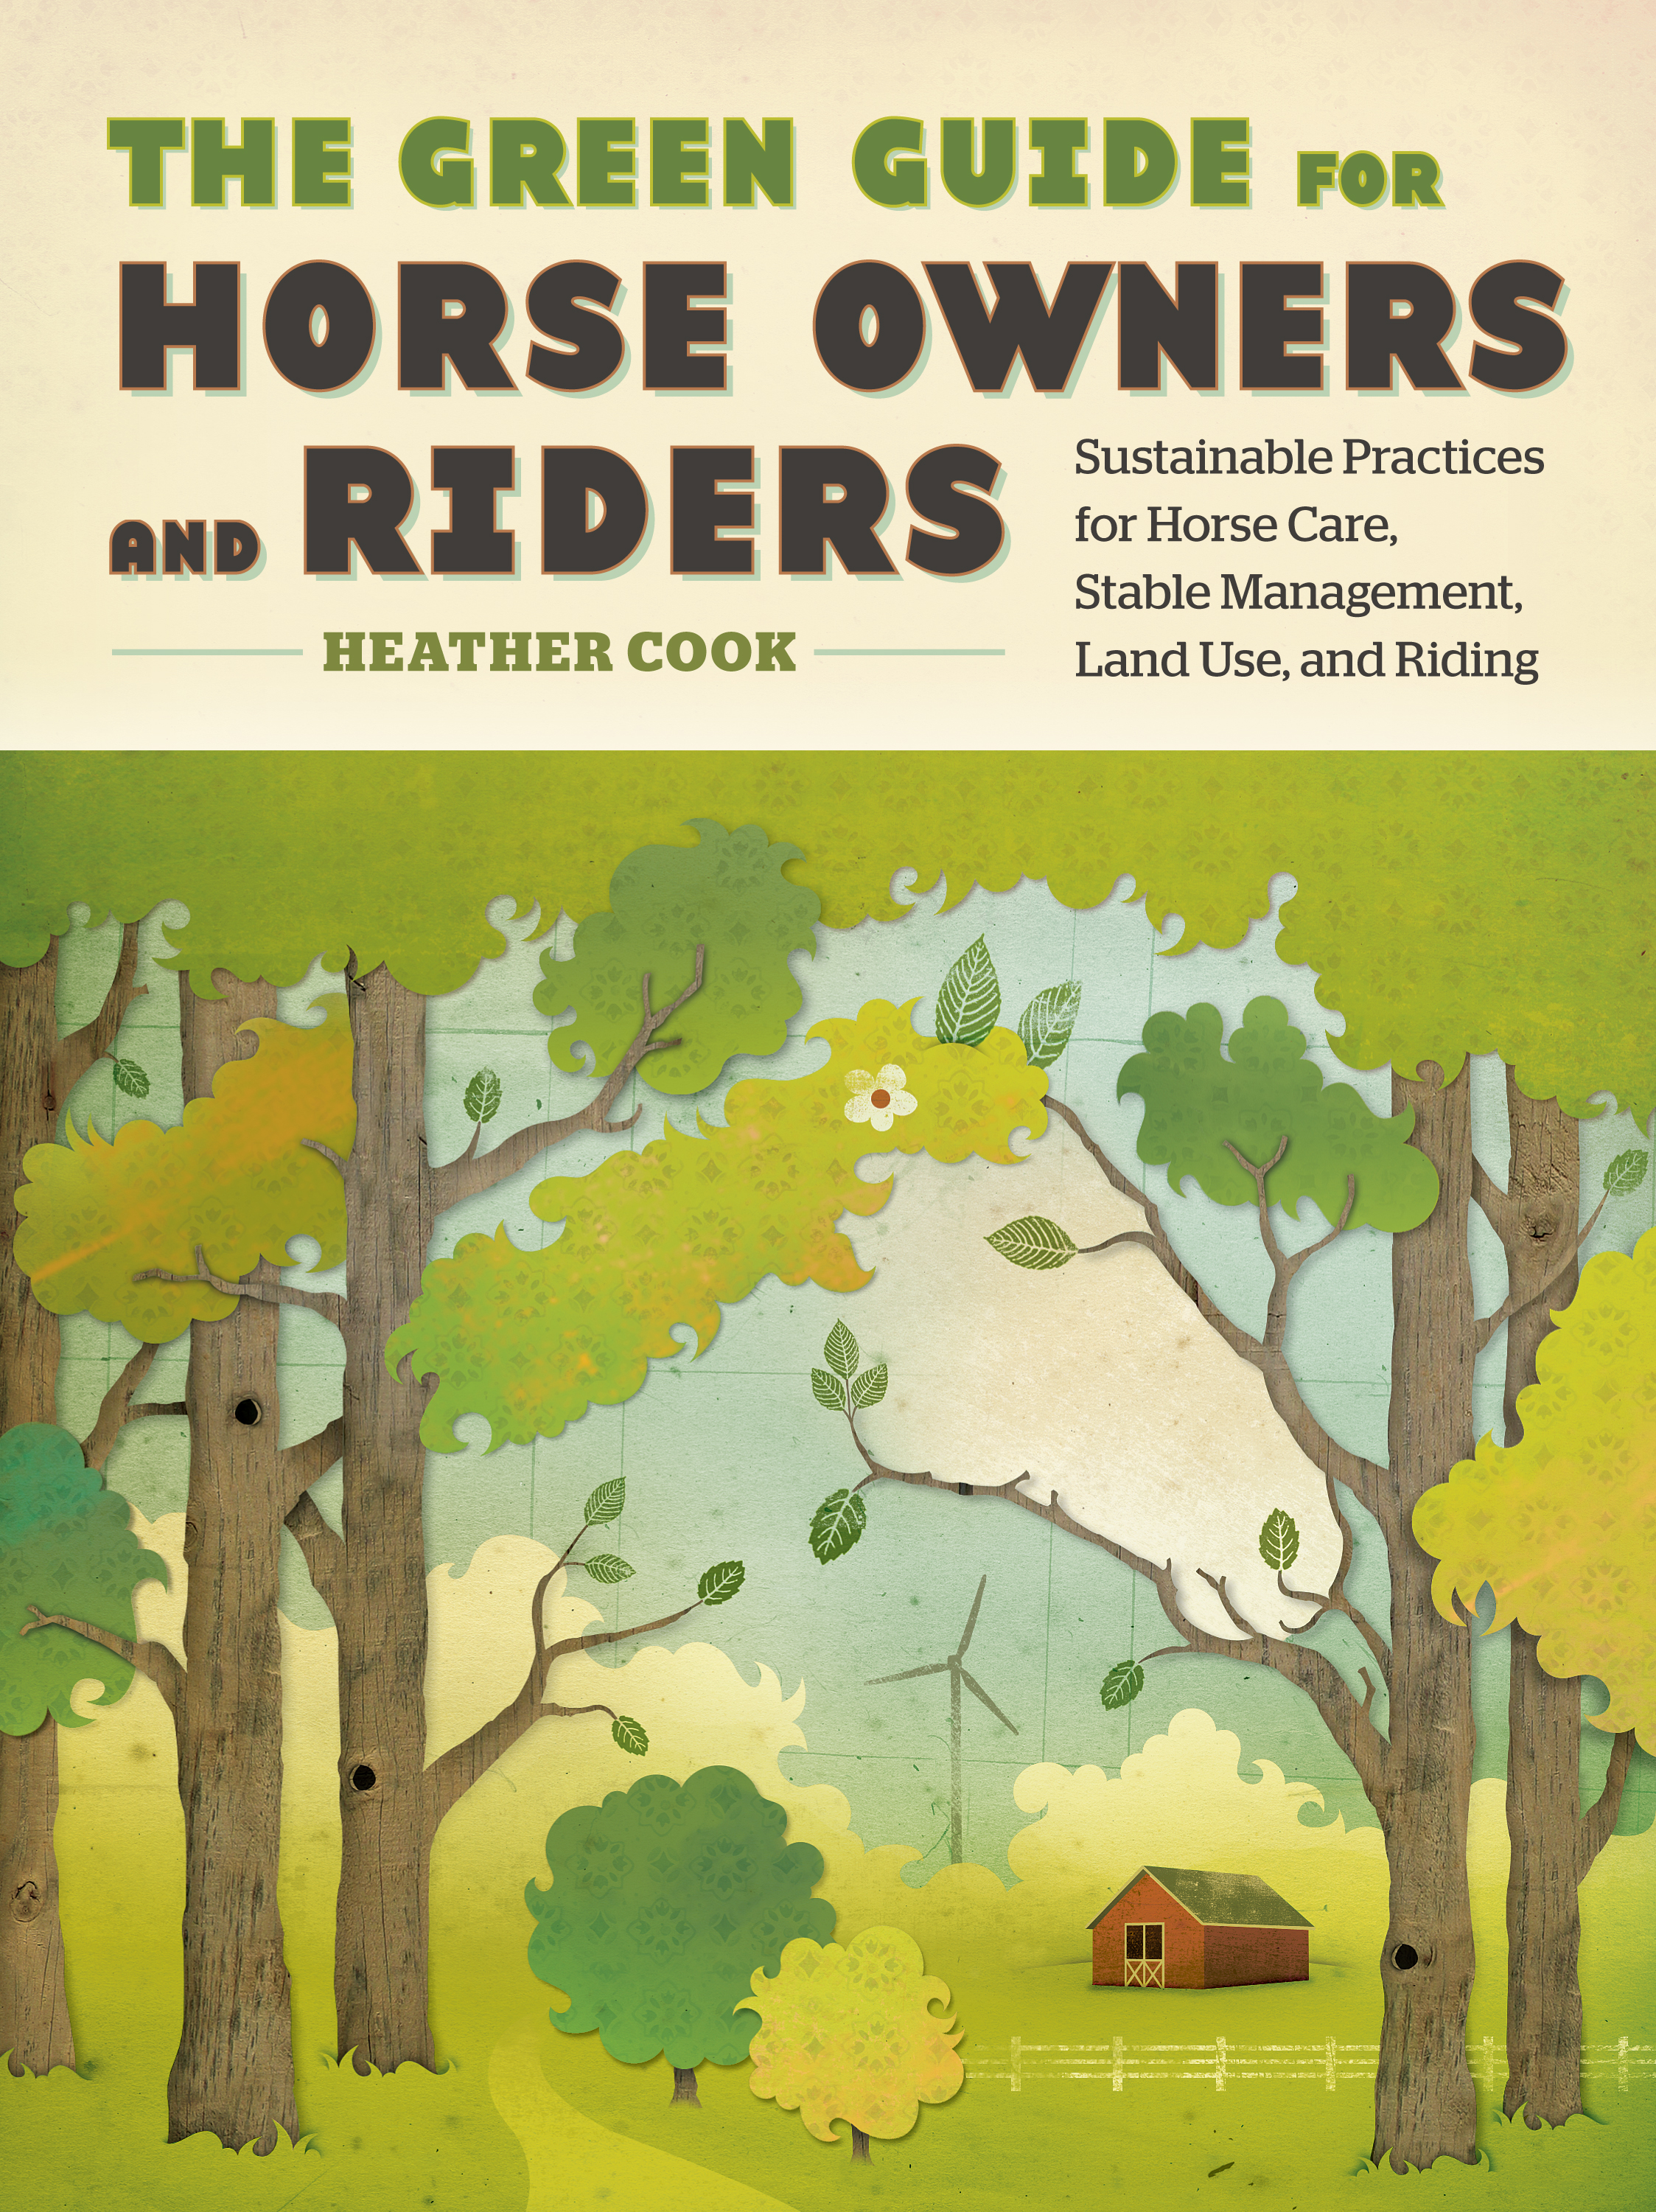 The Green Guide for Horse Owners and Riders Sustainable Practices for Horse Care, Stable Management, Land Use, and Riding - Heather Cook